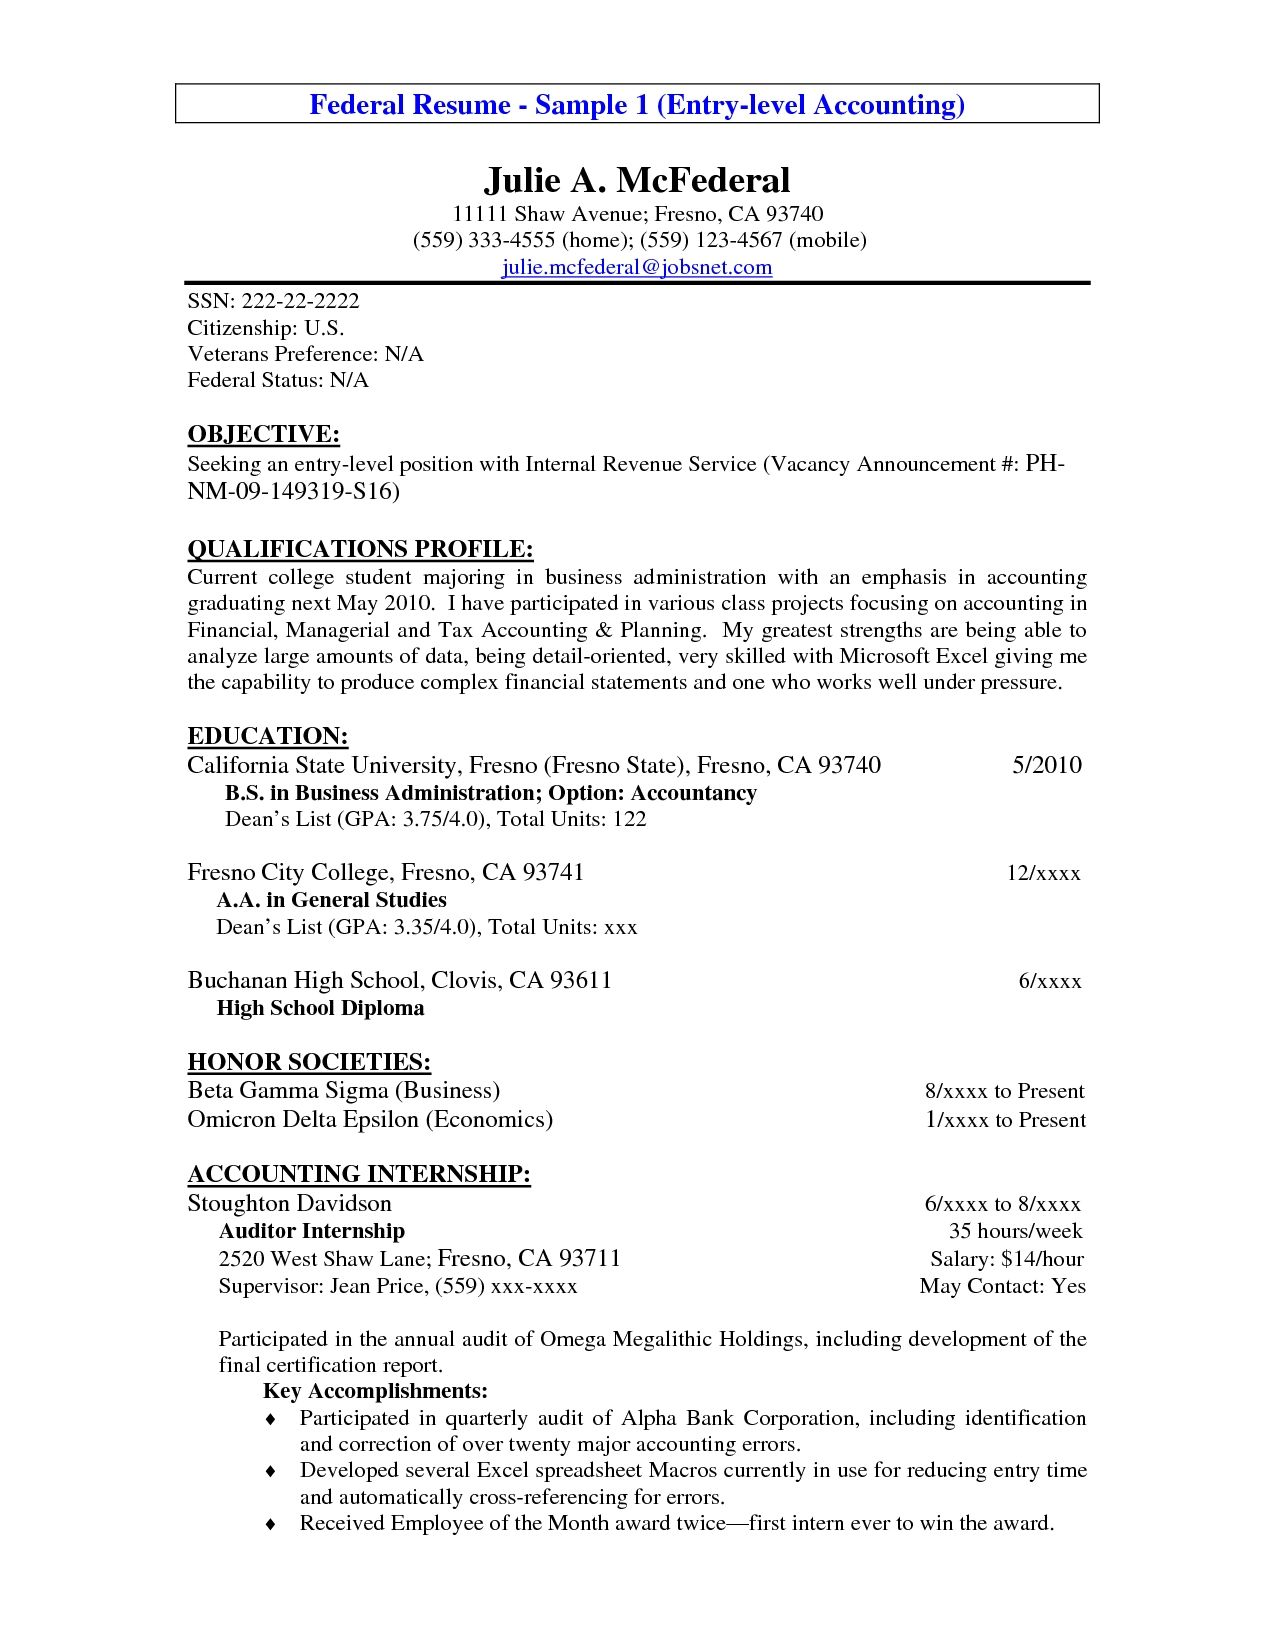 entry level resume example entry level accounting resume sample gallery photos - Entry Level Resume Examples